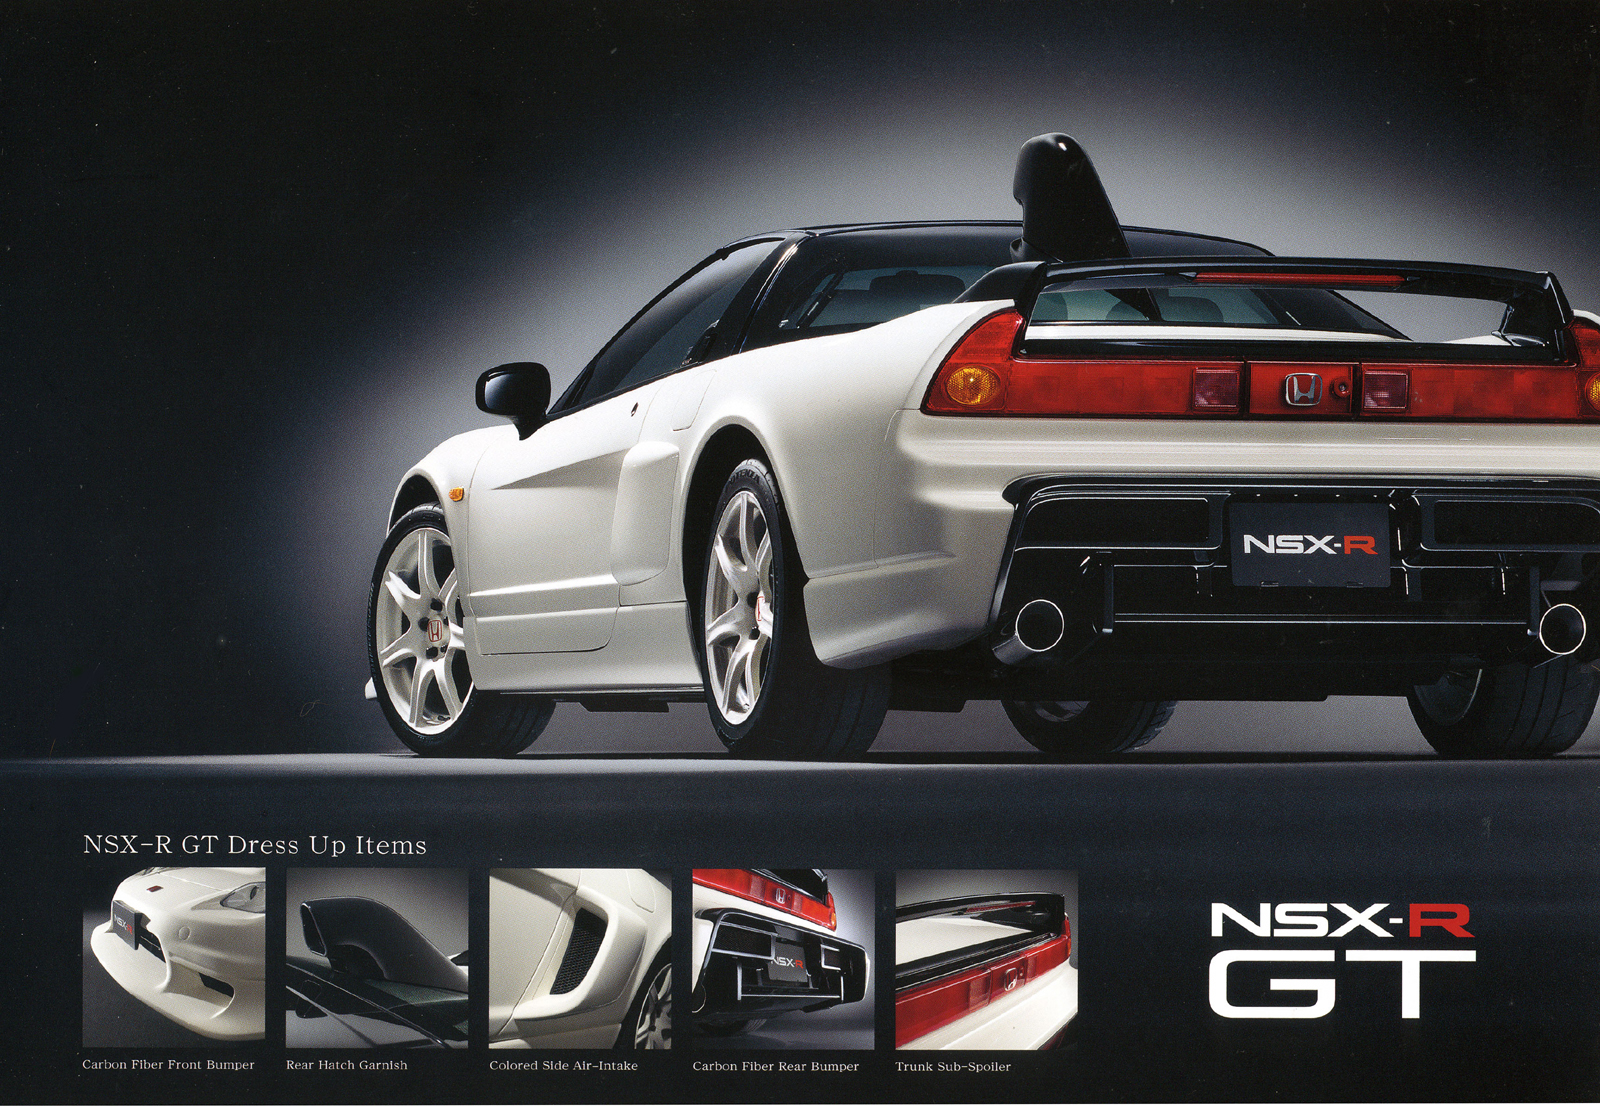 13449NSX_R_GT_Page_3 nsx r gt [archive] nsx prime  at mifinder.co